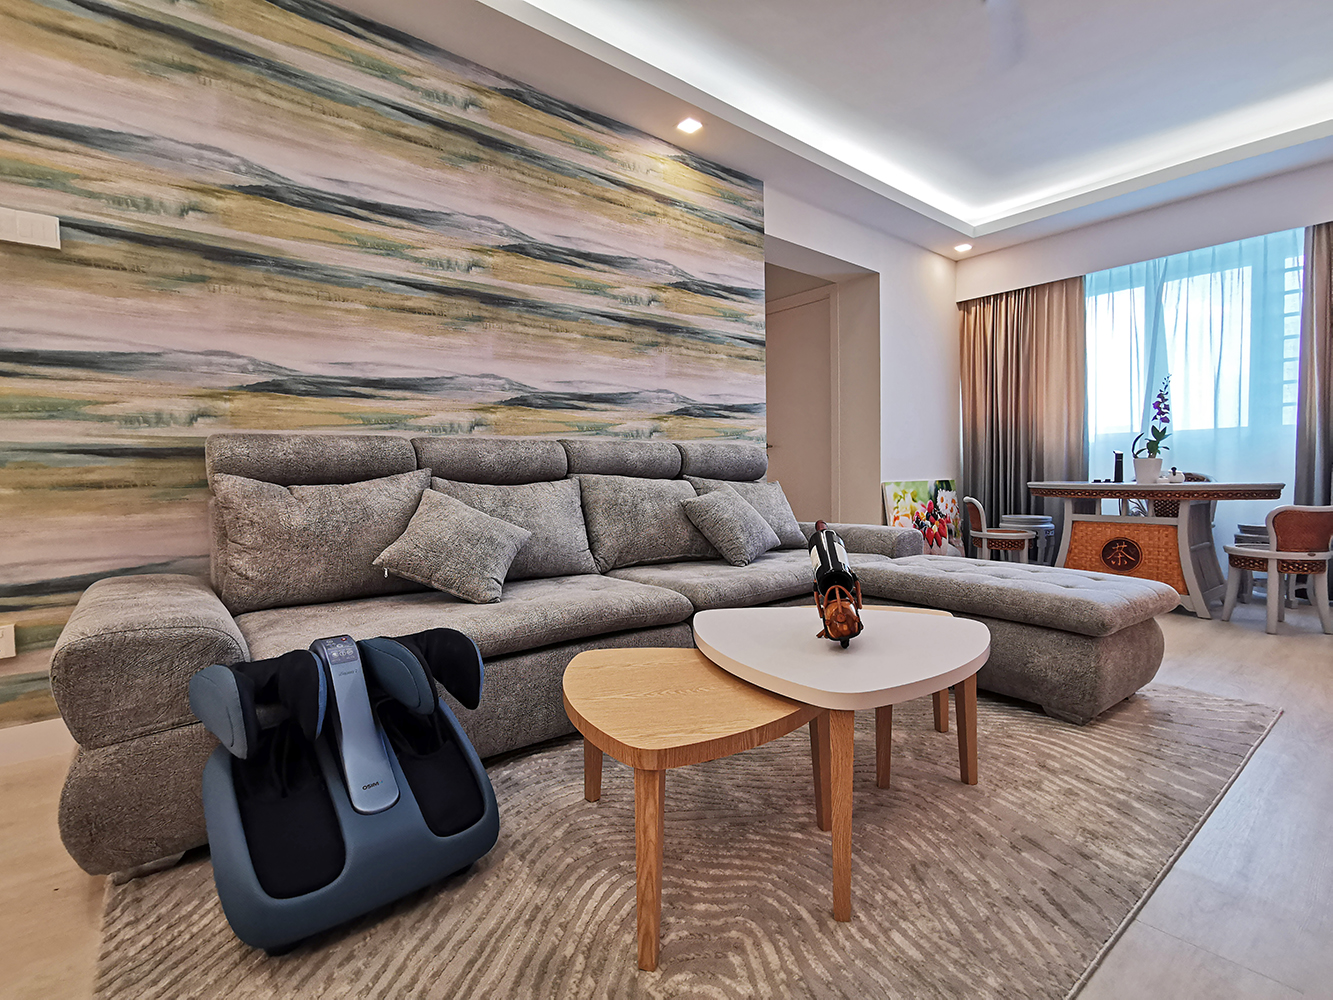 Sembawang-Crescent-Apartment-by-3i-Design-Studio Articles